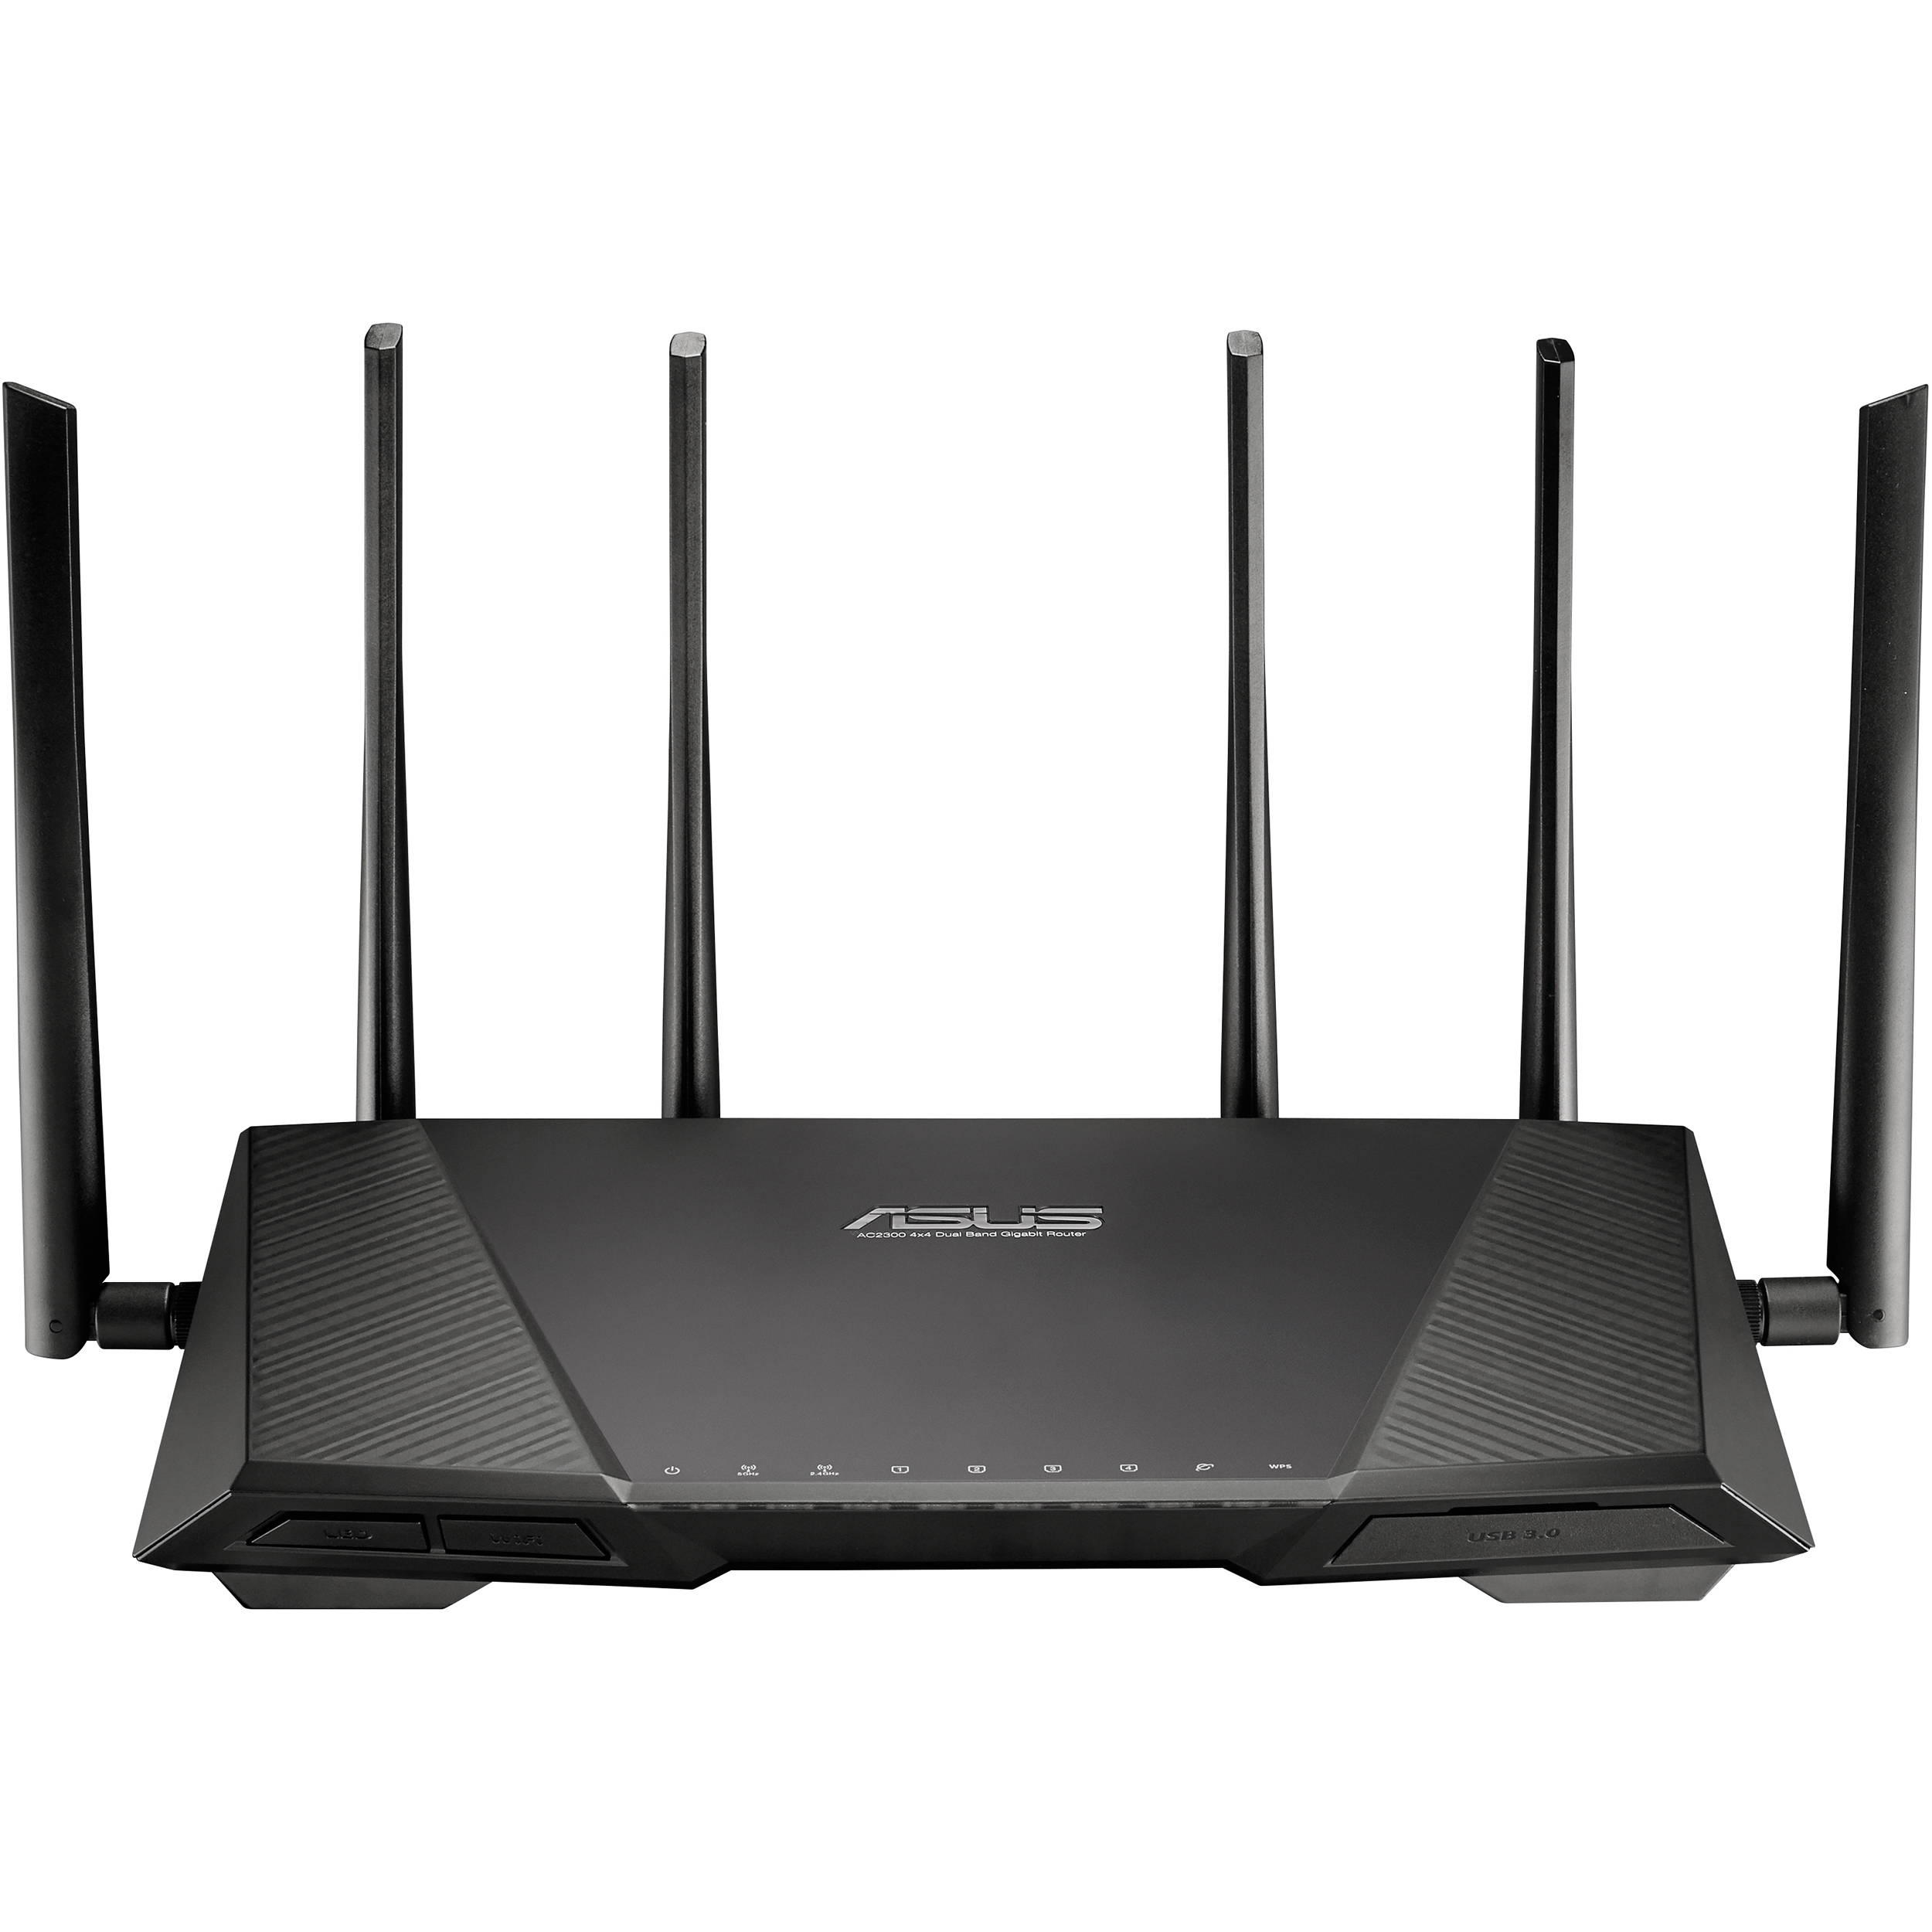 Compare Asus Wireless Routers Wire Center Mdc300120151 Brushless Speed Controllers 1hp And Over Rt Ac3200 Tri Band Gigabit Router Rh Bhphotovideo Com Wl